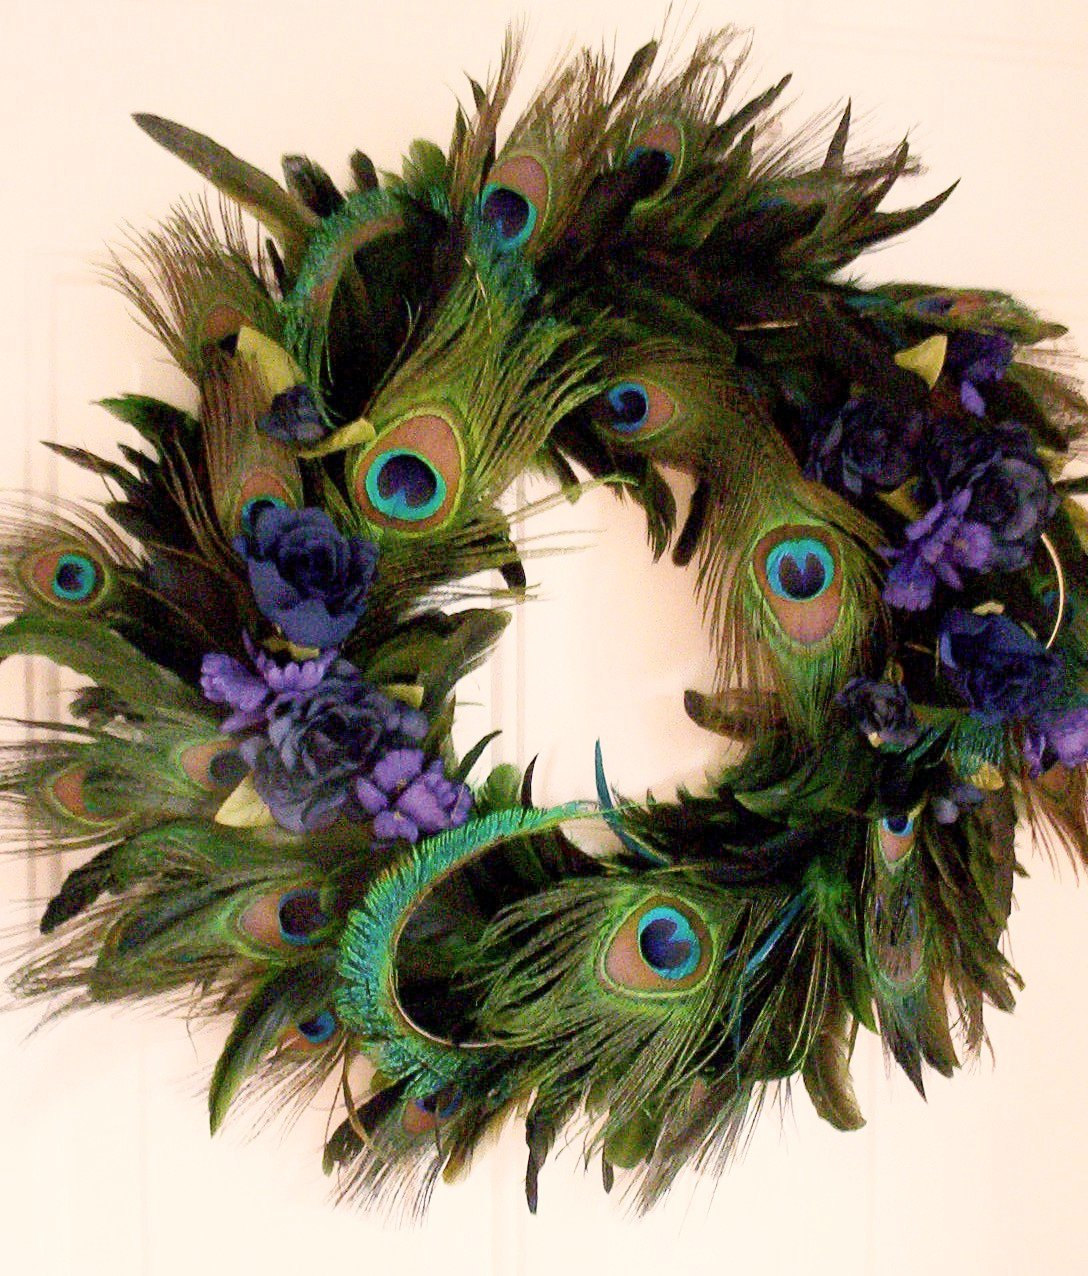 Ophelia S Adornments Blog May 2012: Ophelia's Adornments Blog: Peacock Feathers